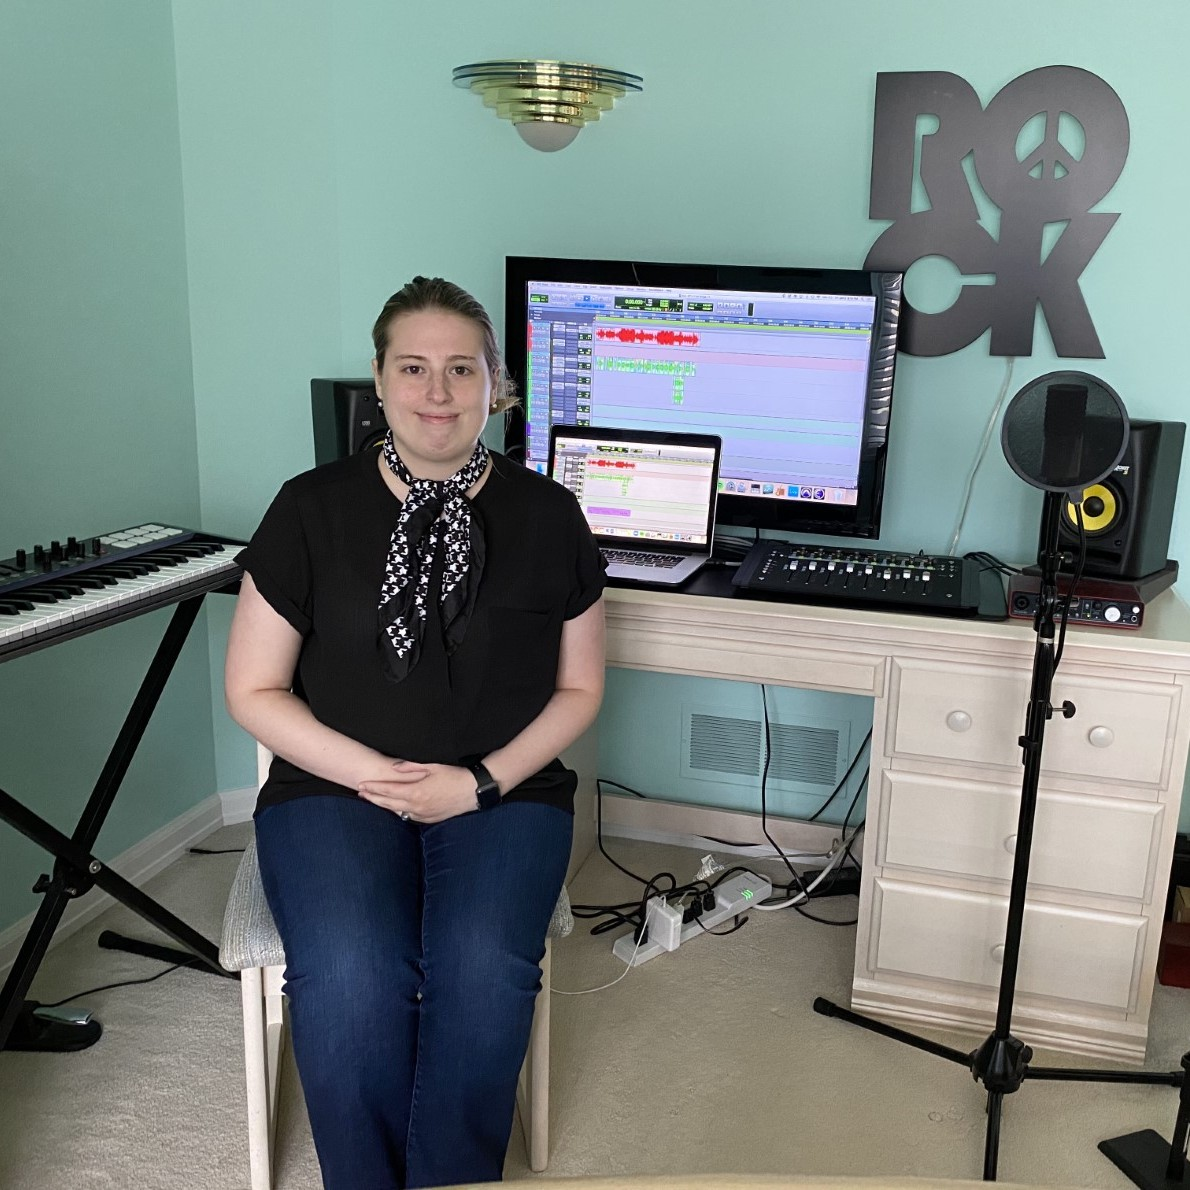 """Jackie Loupakos is a songwriter, audio engineer, and AV technician. She graduated from Columbia College Chicago majoring in Audio Design and Production. Her mission is to provide artists with audio that is honest, accurate, and meaningful through sound design and post-production, utilizing a wide variety of platforms. She is excited to be a part of the """"PlaybackPlayfwd"""" project."""